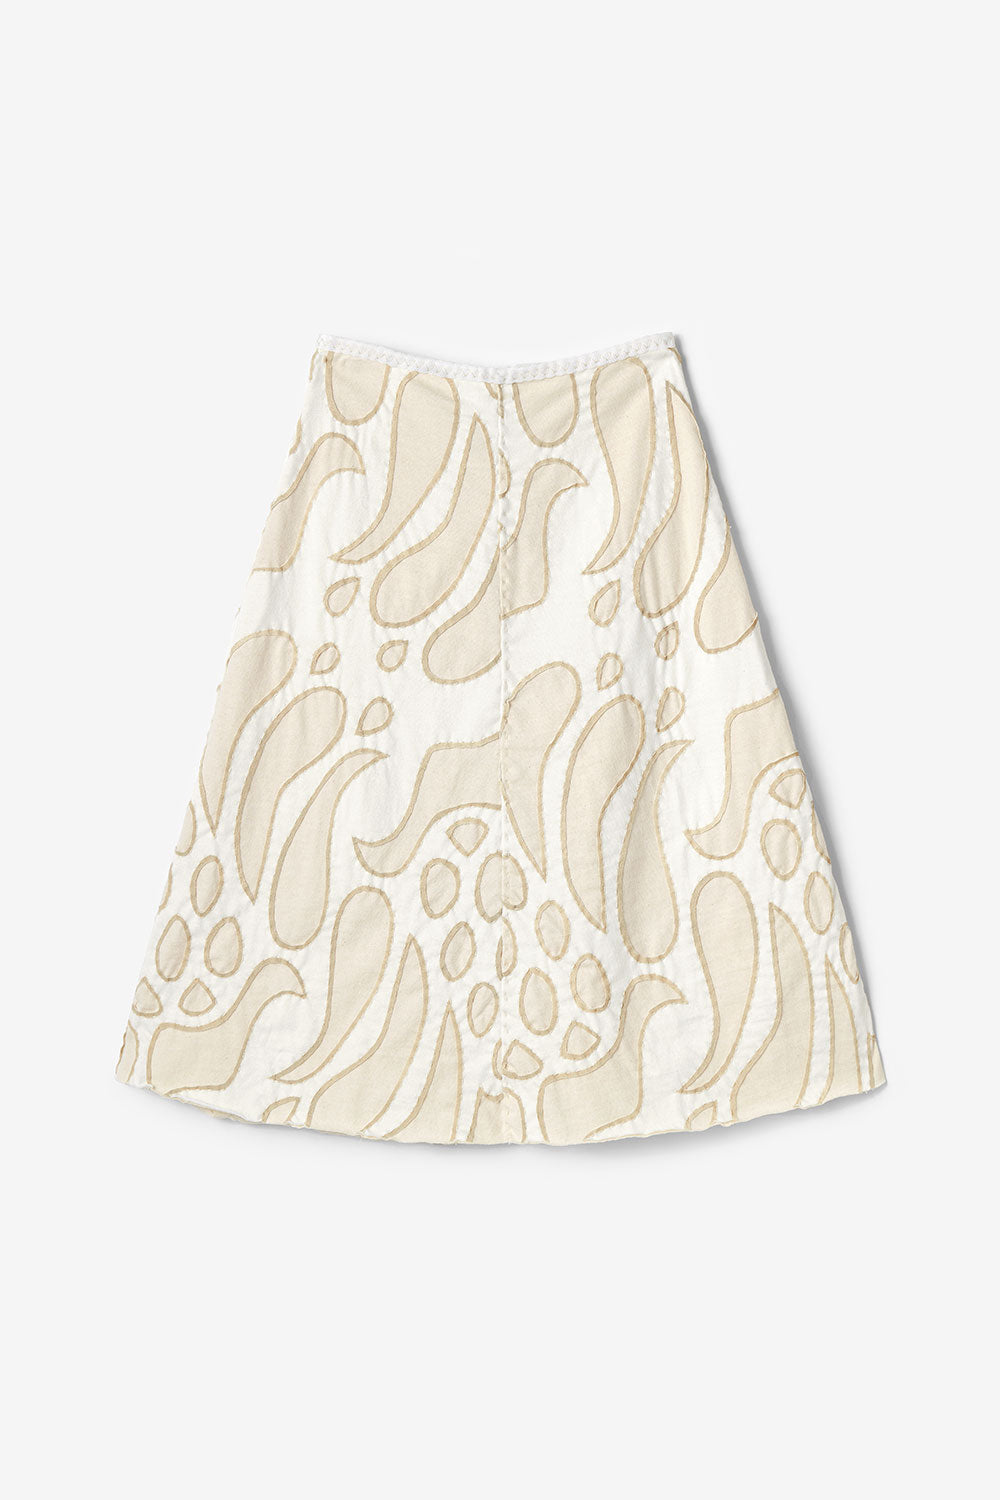 The School of Making Swing Skirt DIY Kit Organic Cotton Natural White Pattern